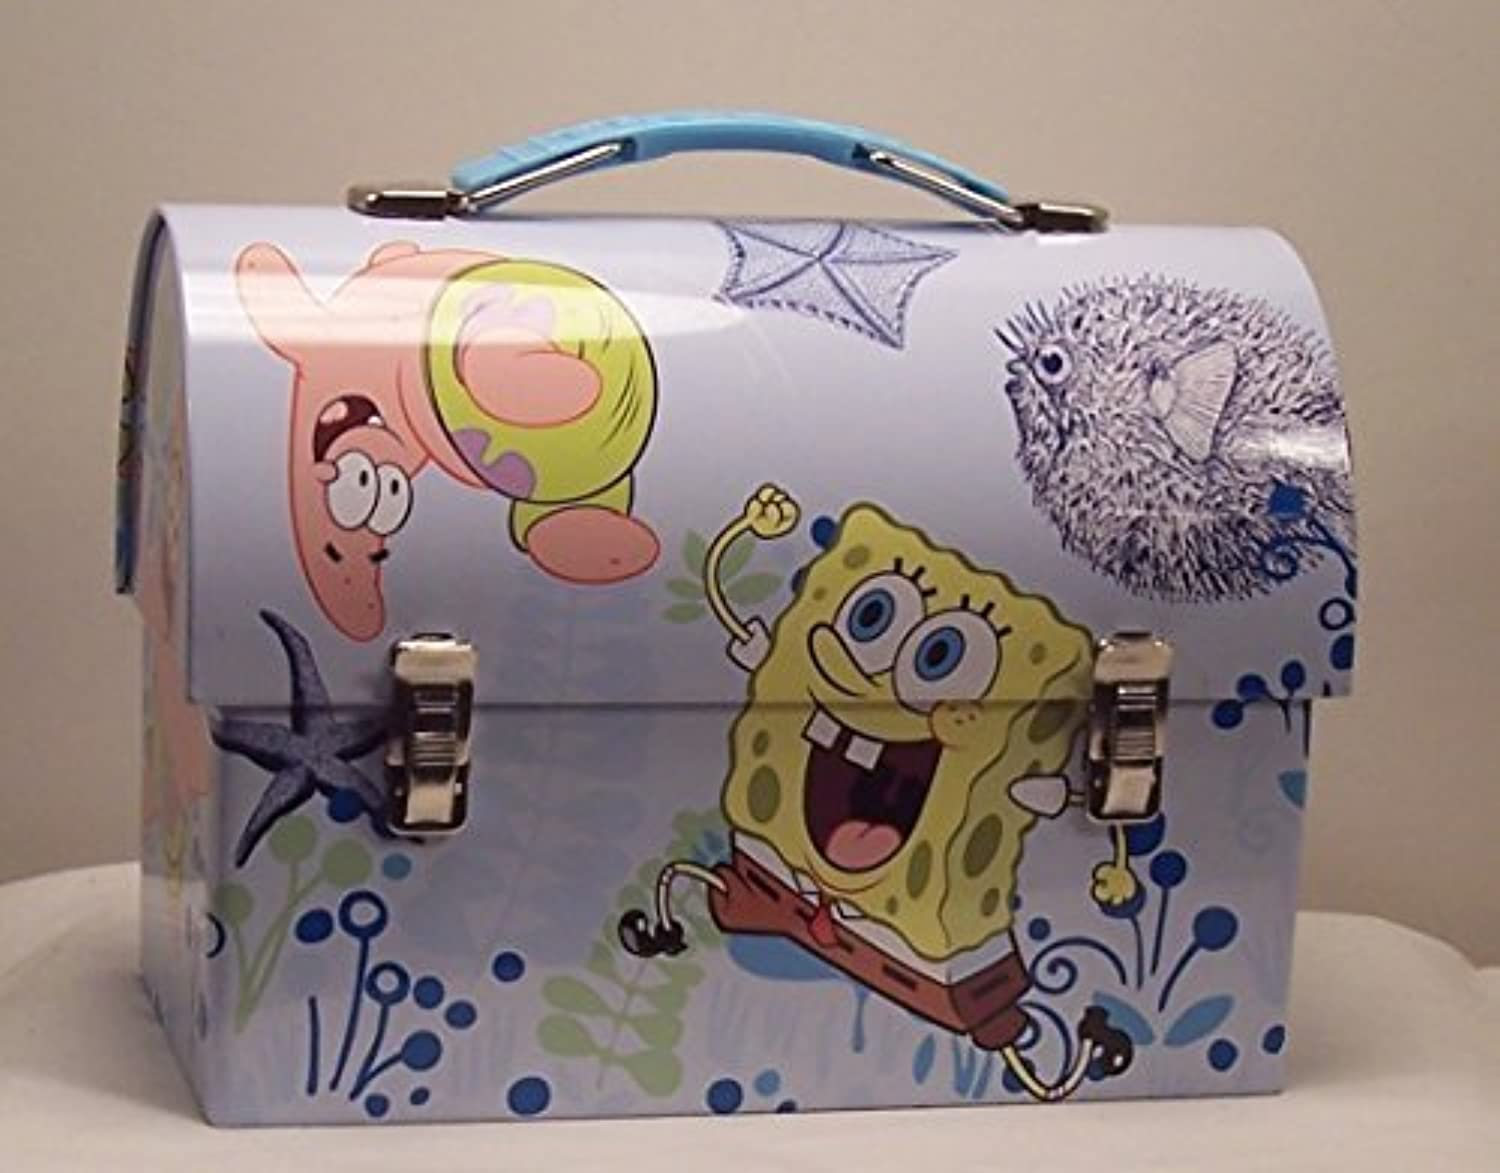 Spongebob Squarepants Light blu lavorouomos Tin autory tutti by SpongeBob SquarePants